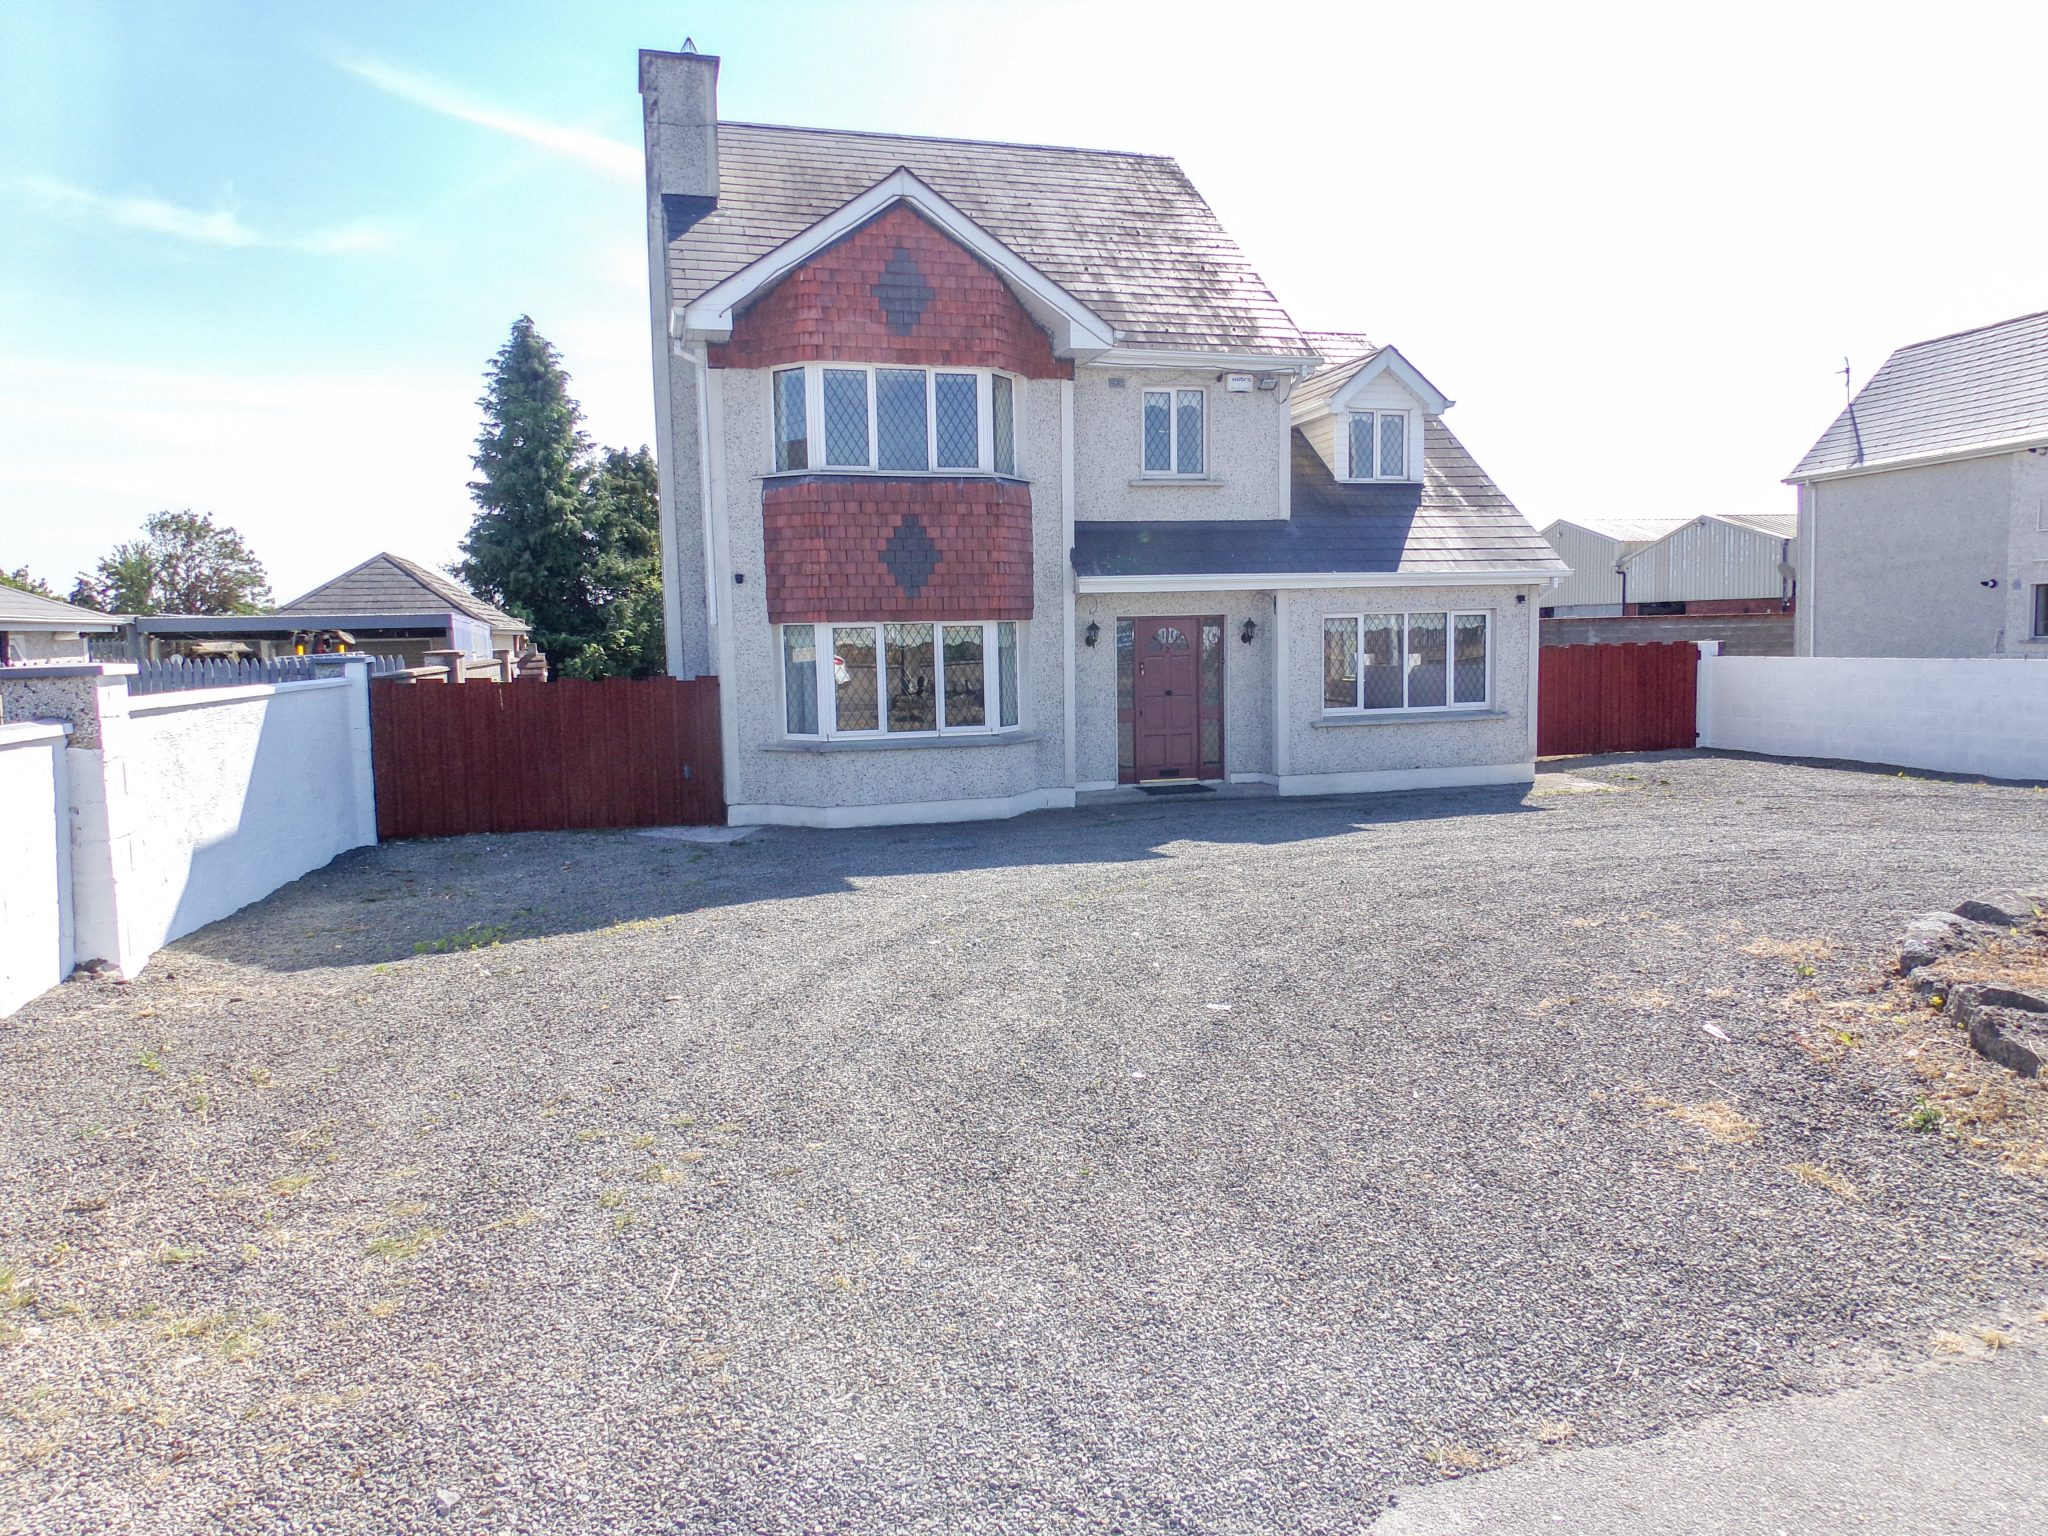 2 Carraig Dubh, Tullow Road, Carlow